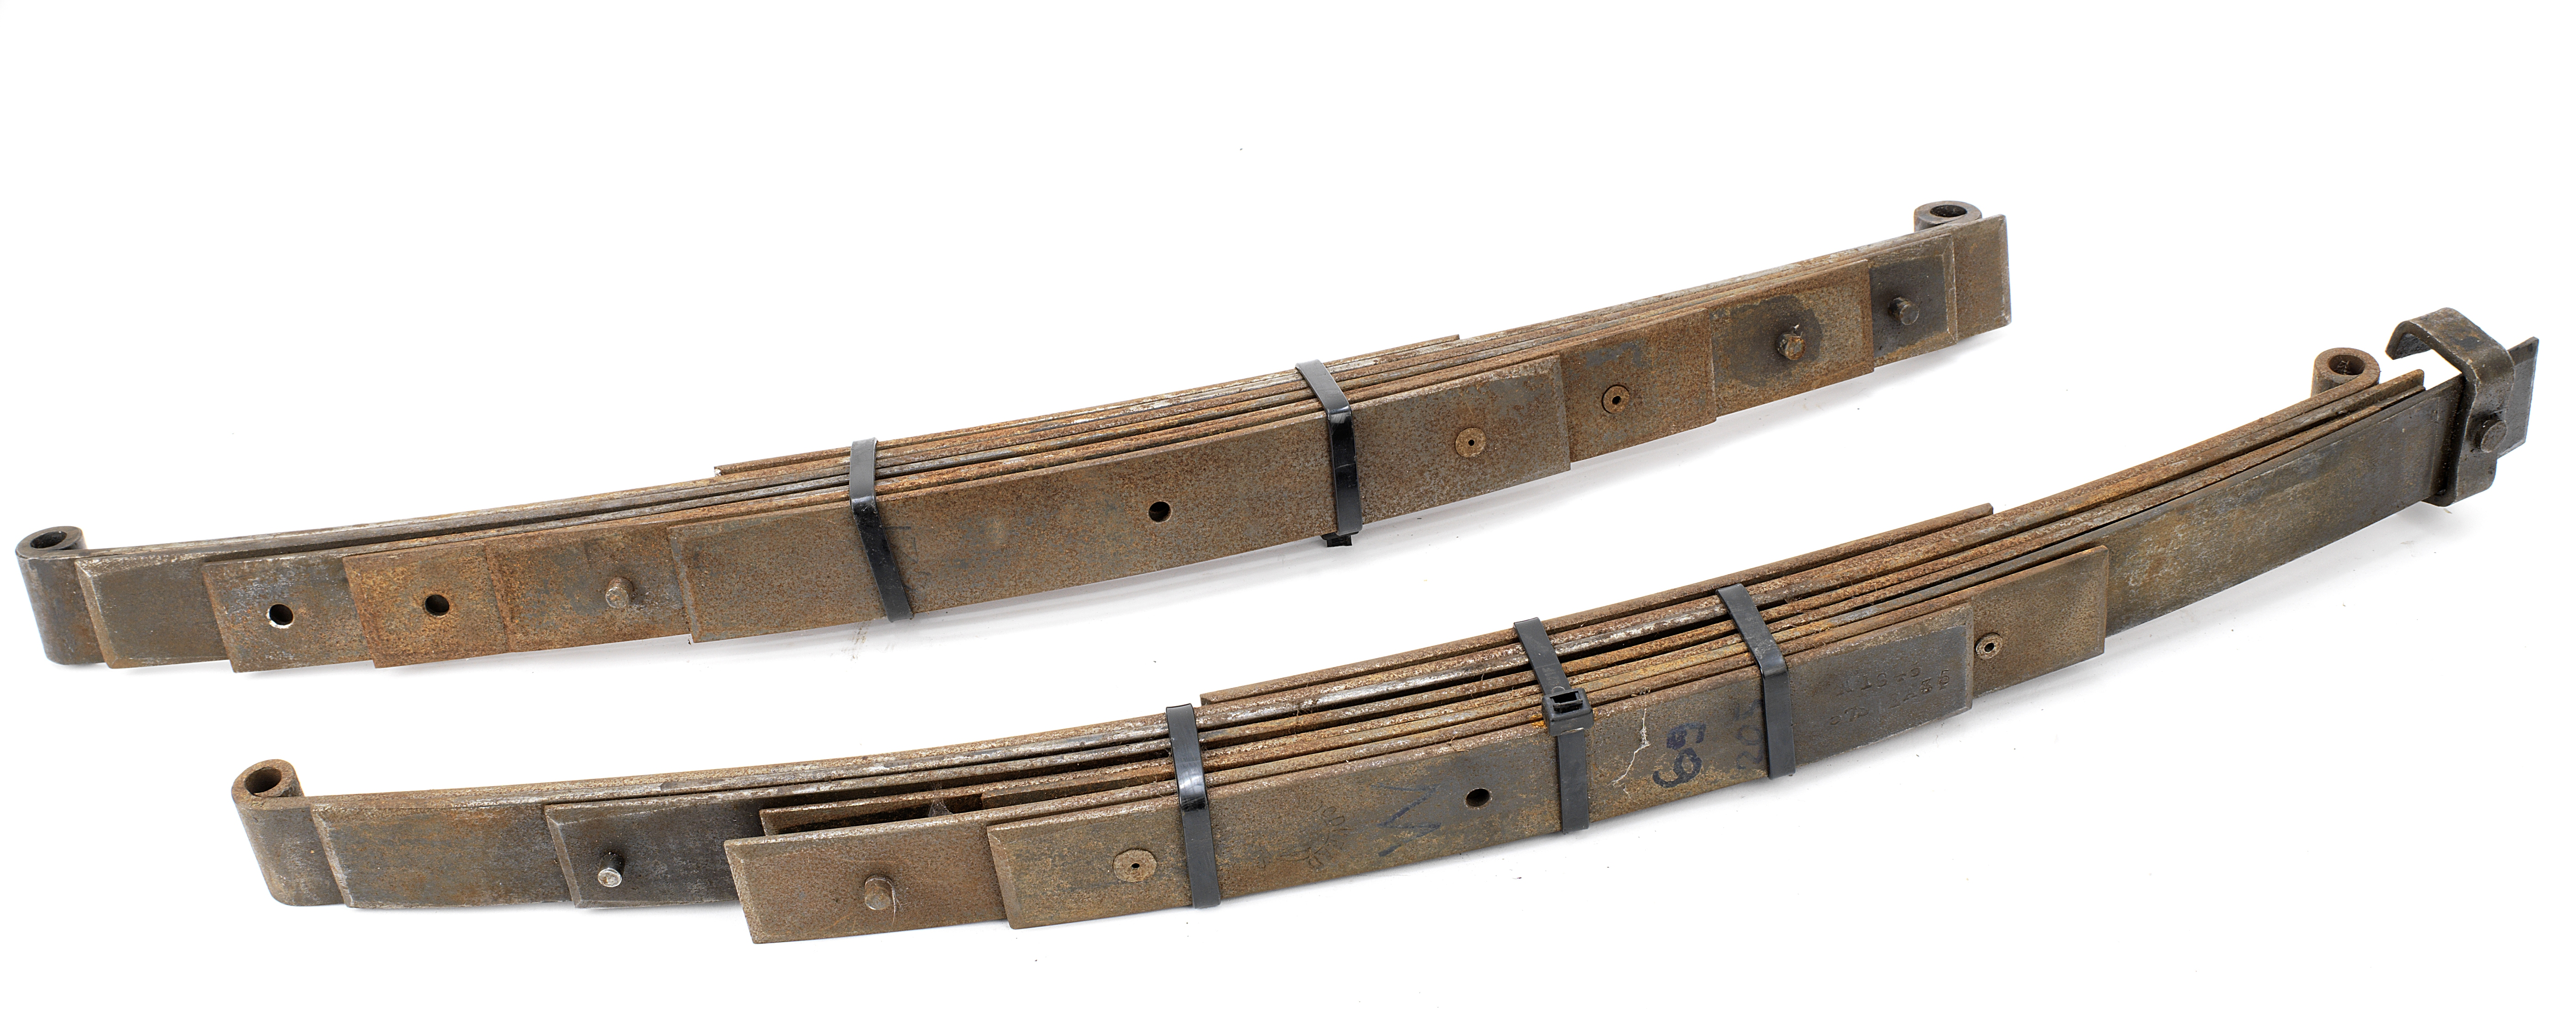 A pair of front leaf springs to fit Bugatti 57/57s, ((2))